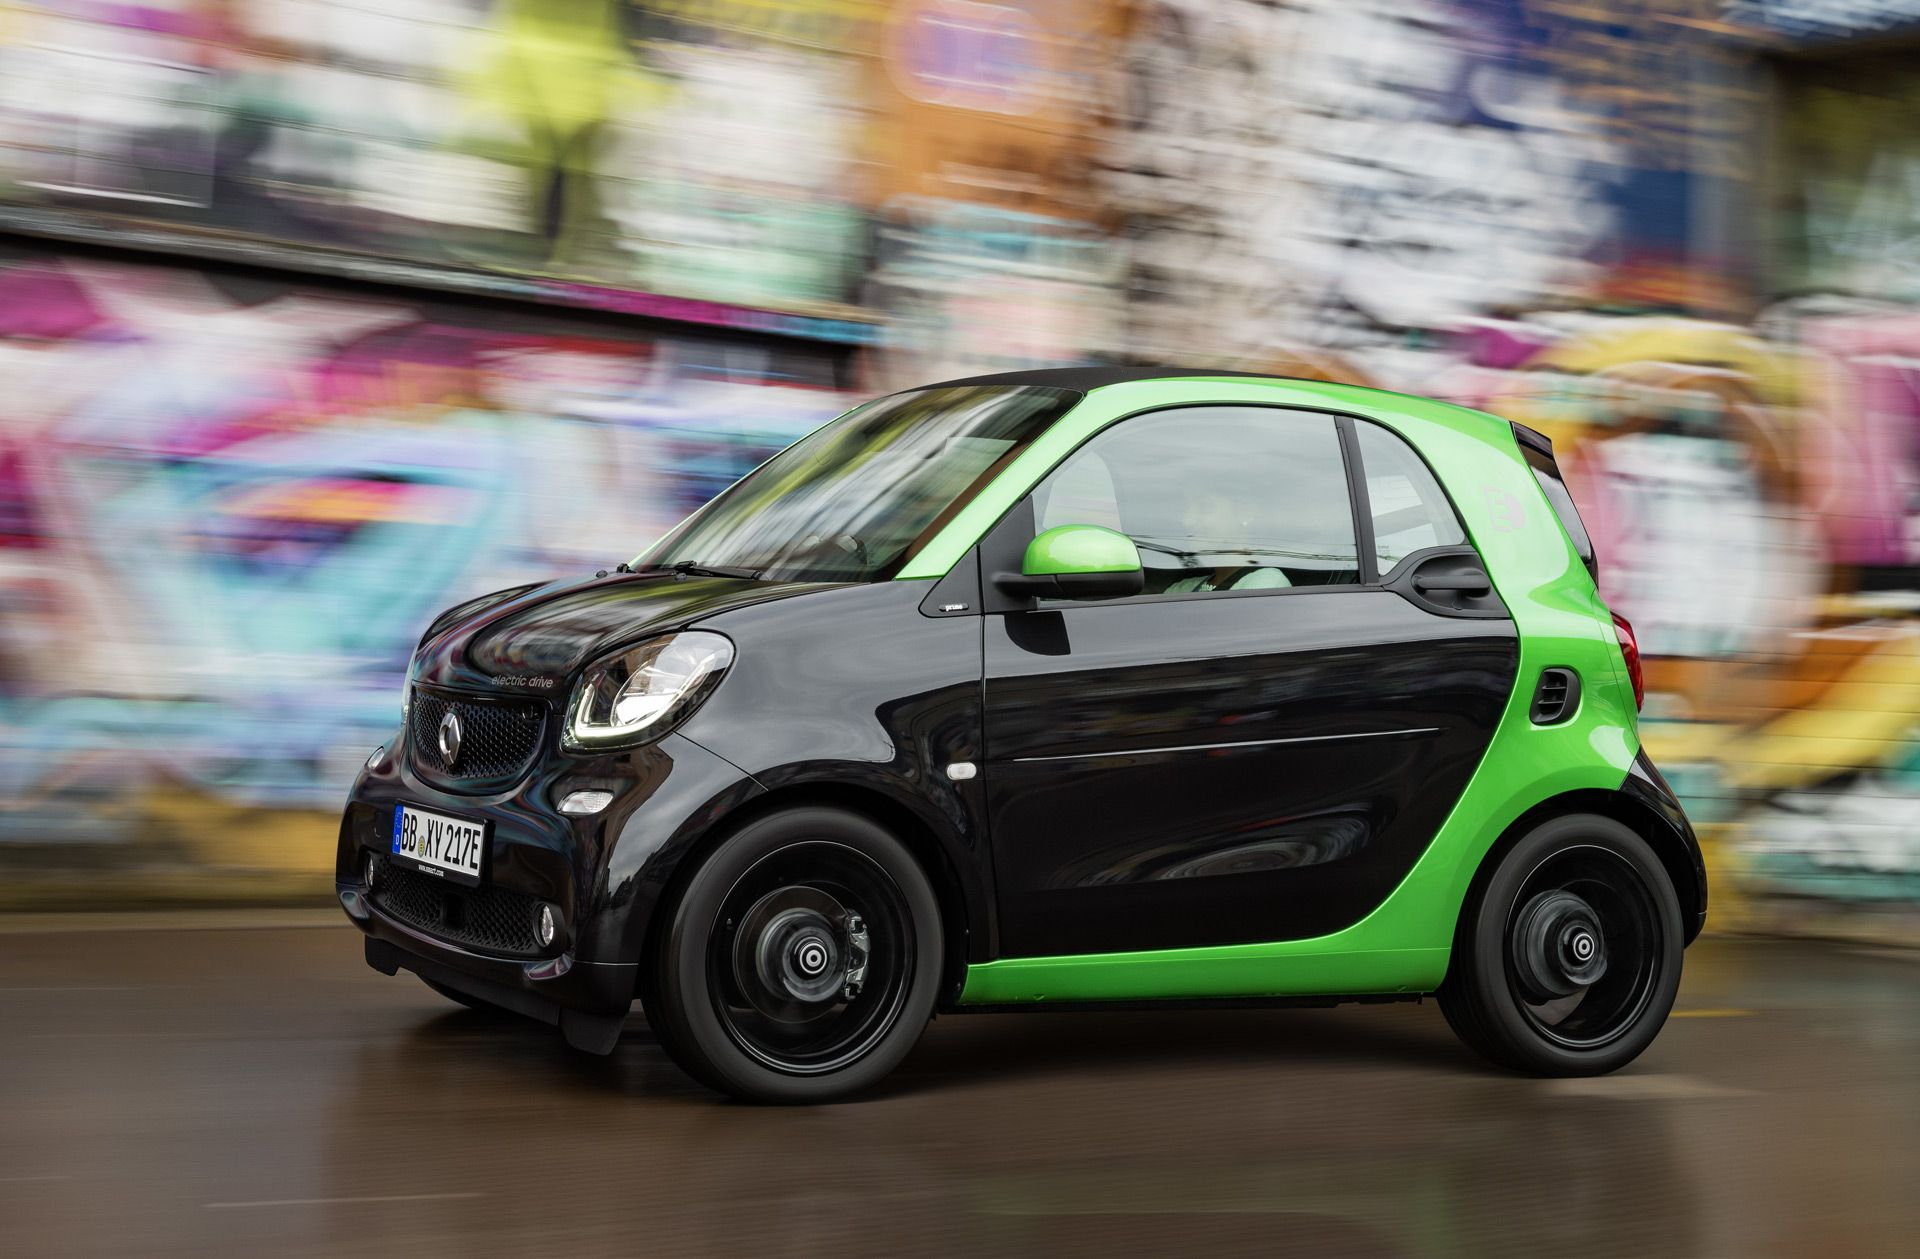 Get The Latest Reviews Of 2017 Smart Fortwo Find Prices Ing Advice Pictures Expert Ratings Safety Features Specs And Price Quotes